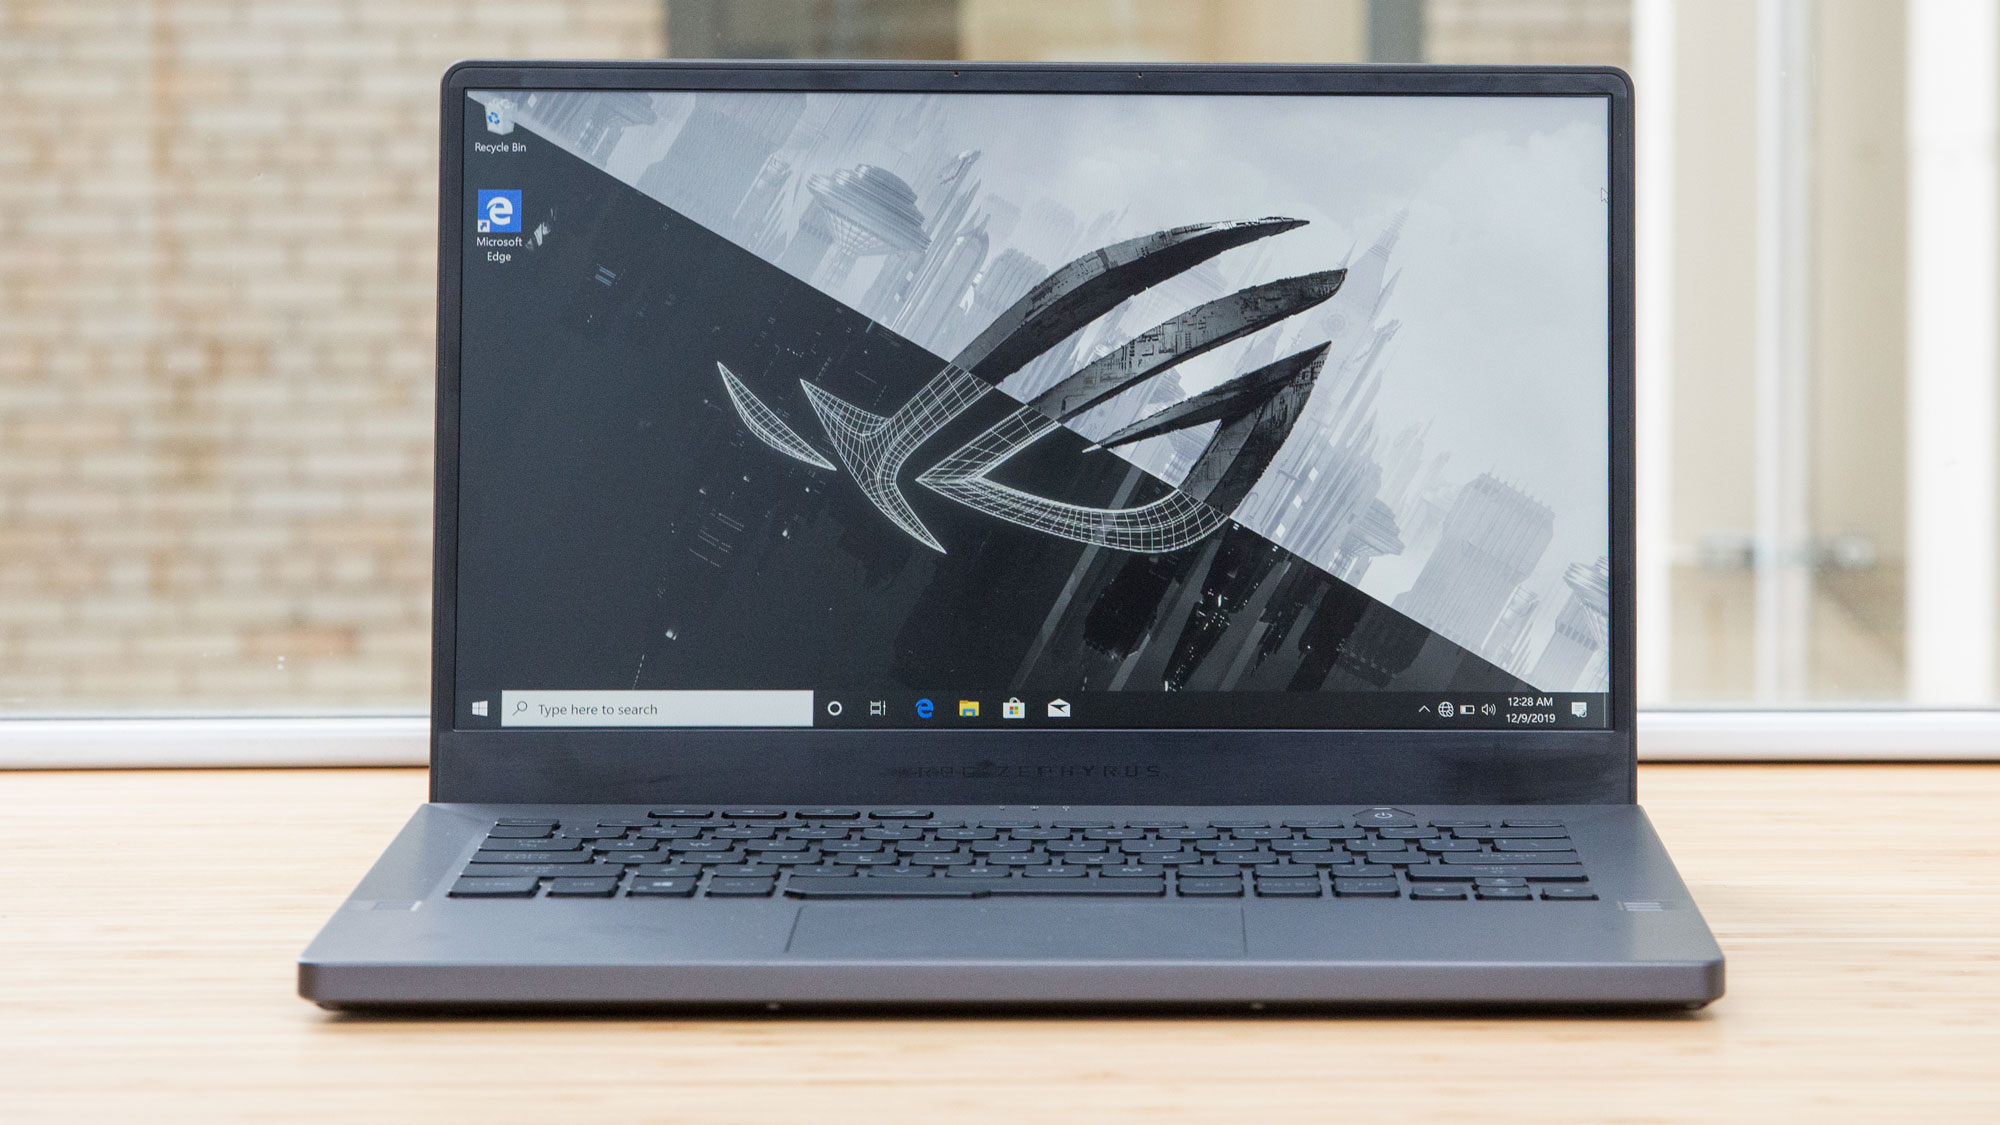 Turn your Normal Laptop into a Gaming Laptop